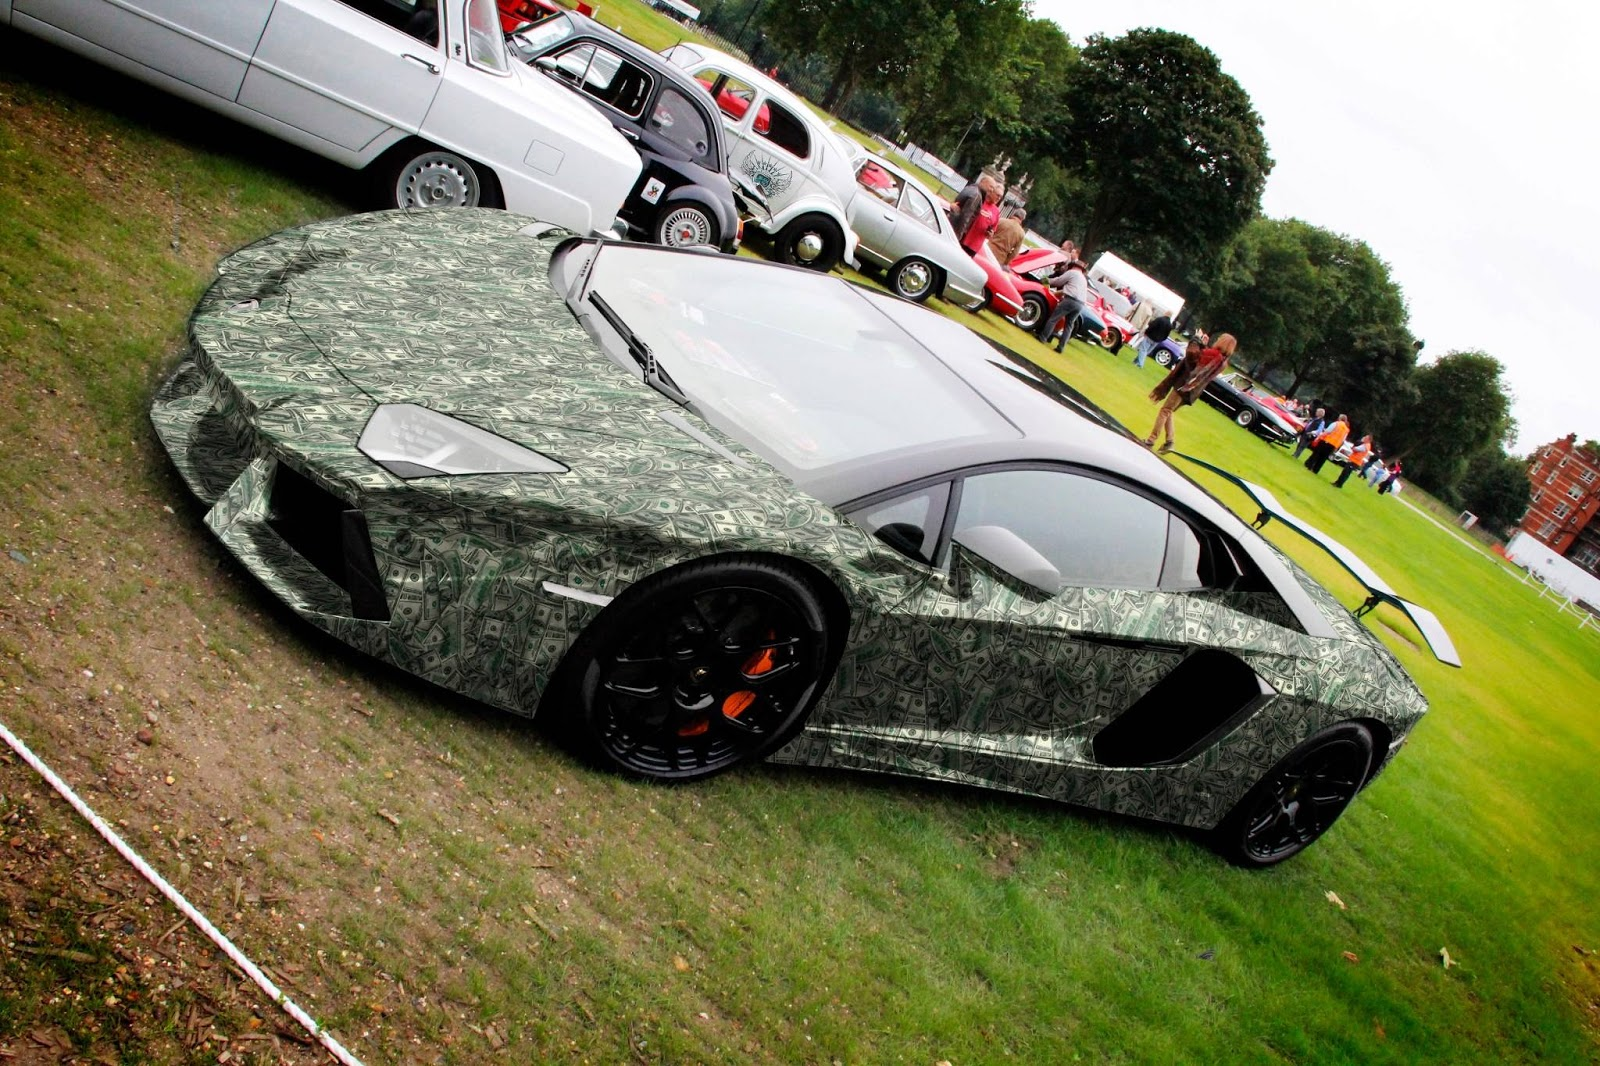 Dubai Police Car Wallpapers Aventador Wrapped In 100 Bills Thanks To Photoshop